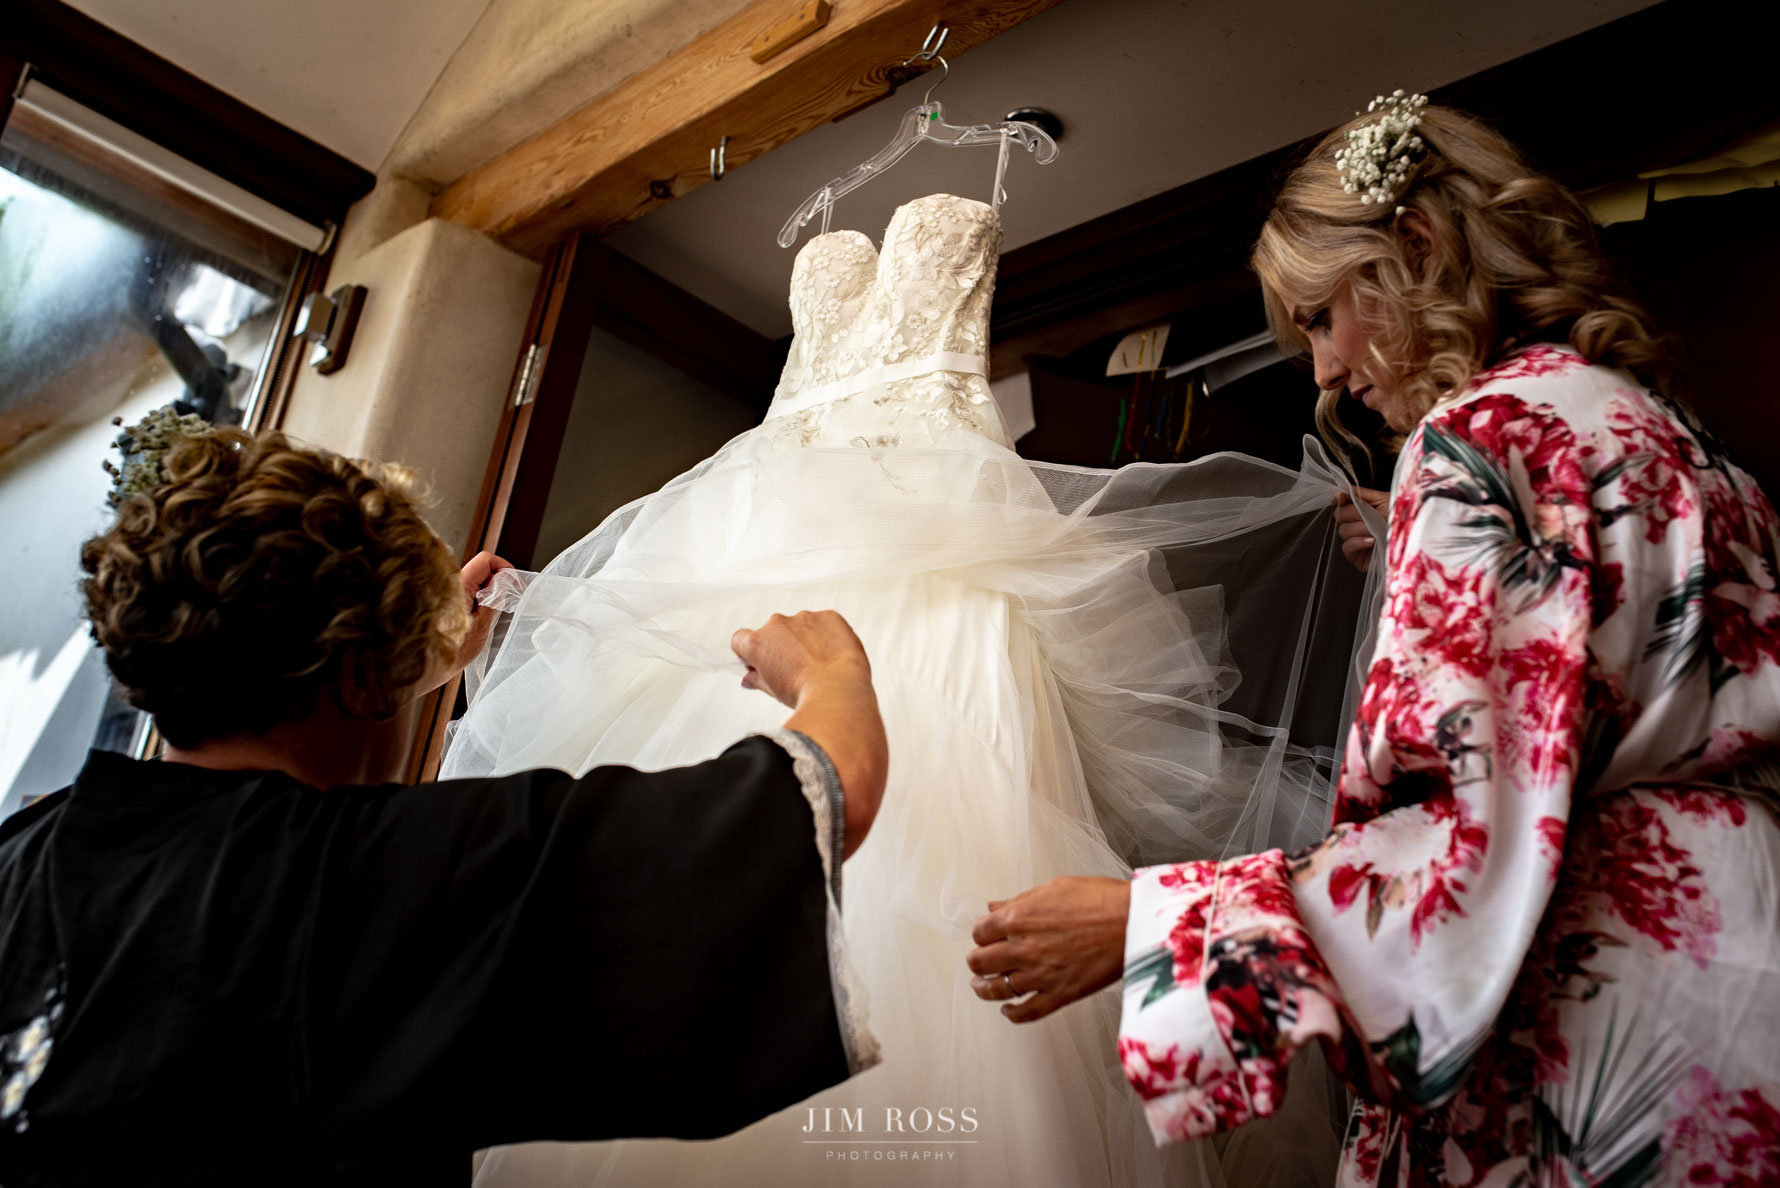 Inspecting the Welsh Yurt wedding dress